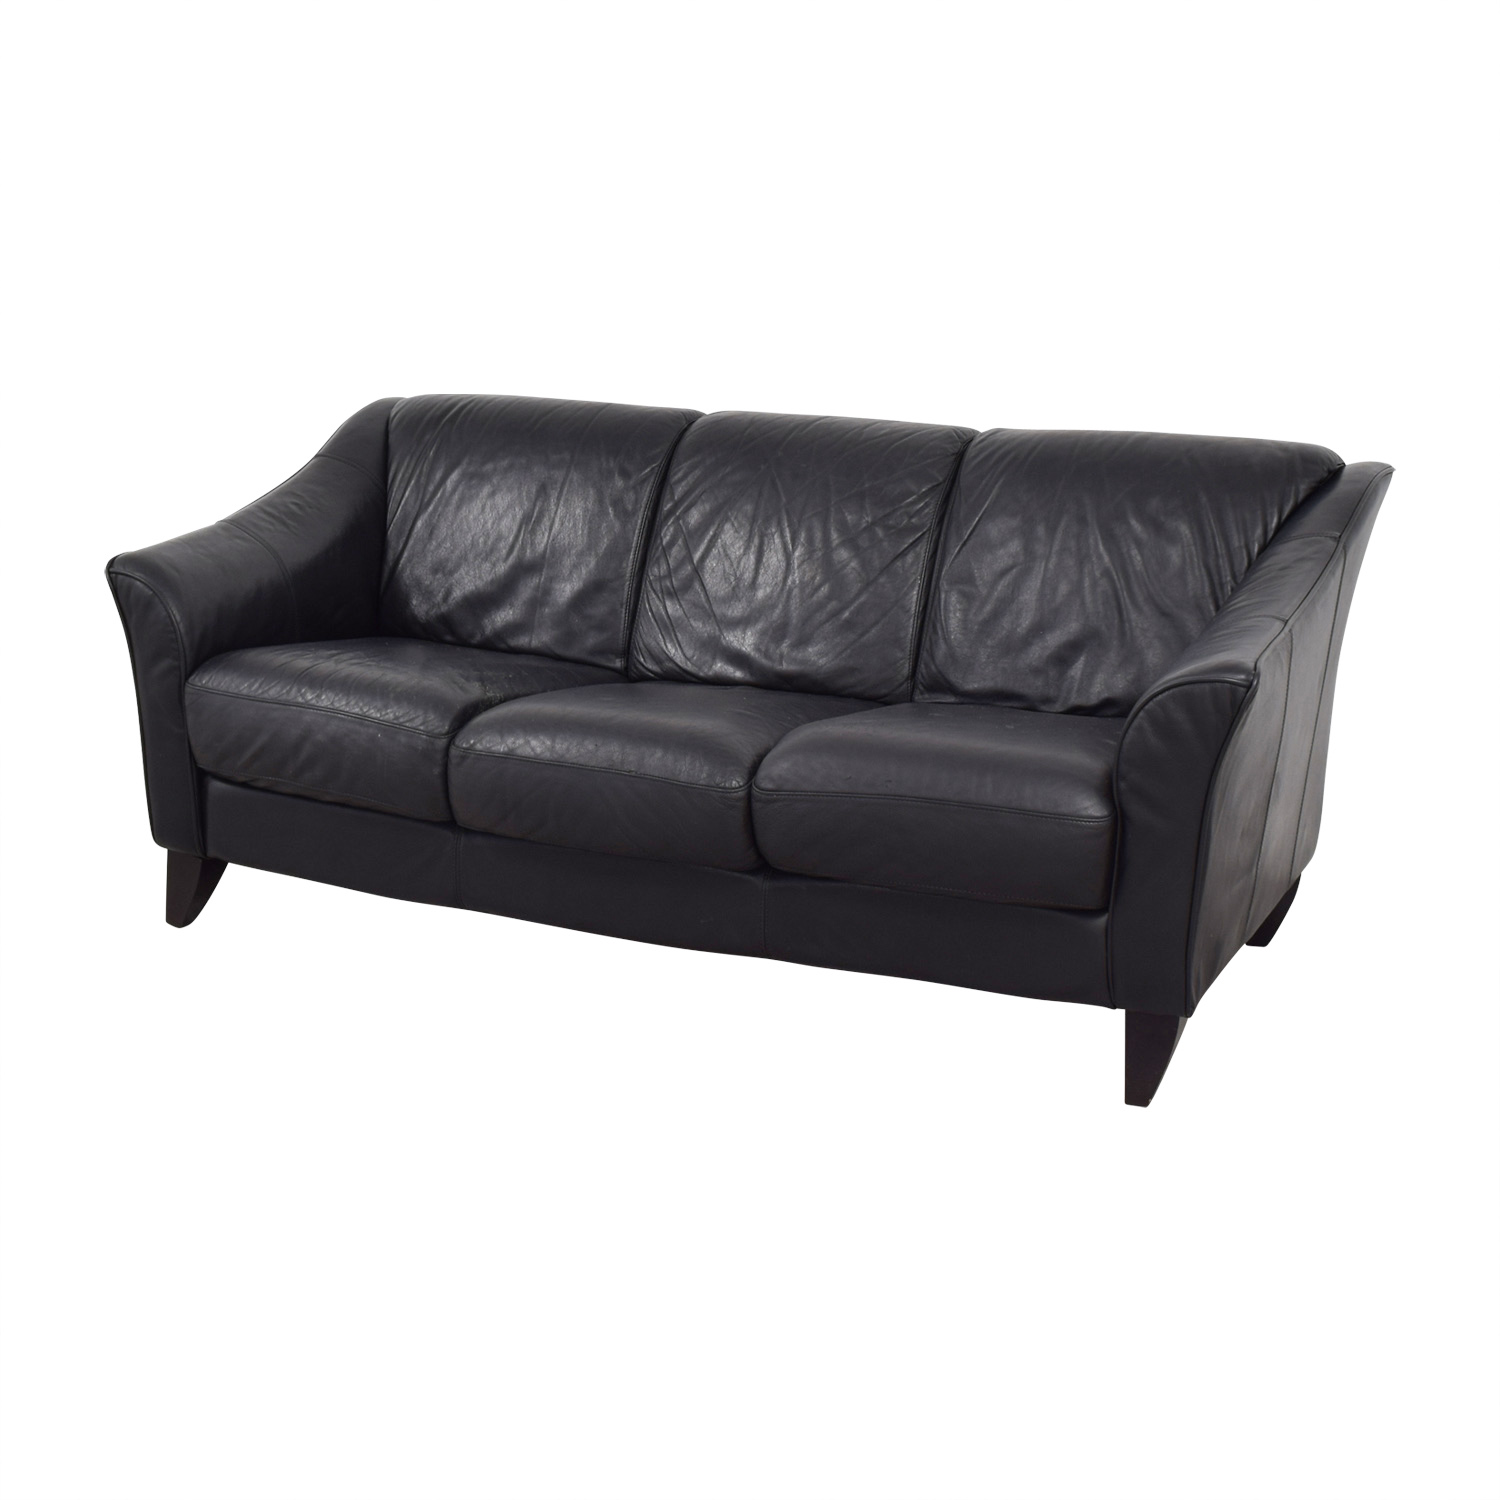 ... Bloomingdales Three Cushion Black Leather Sofa / Sofas ...